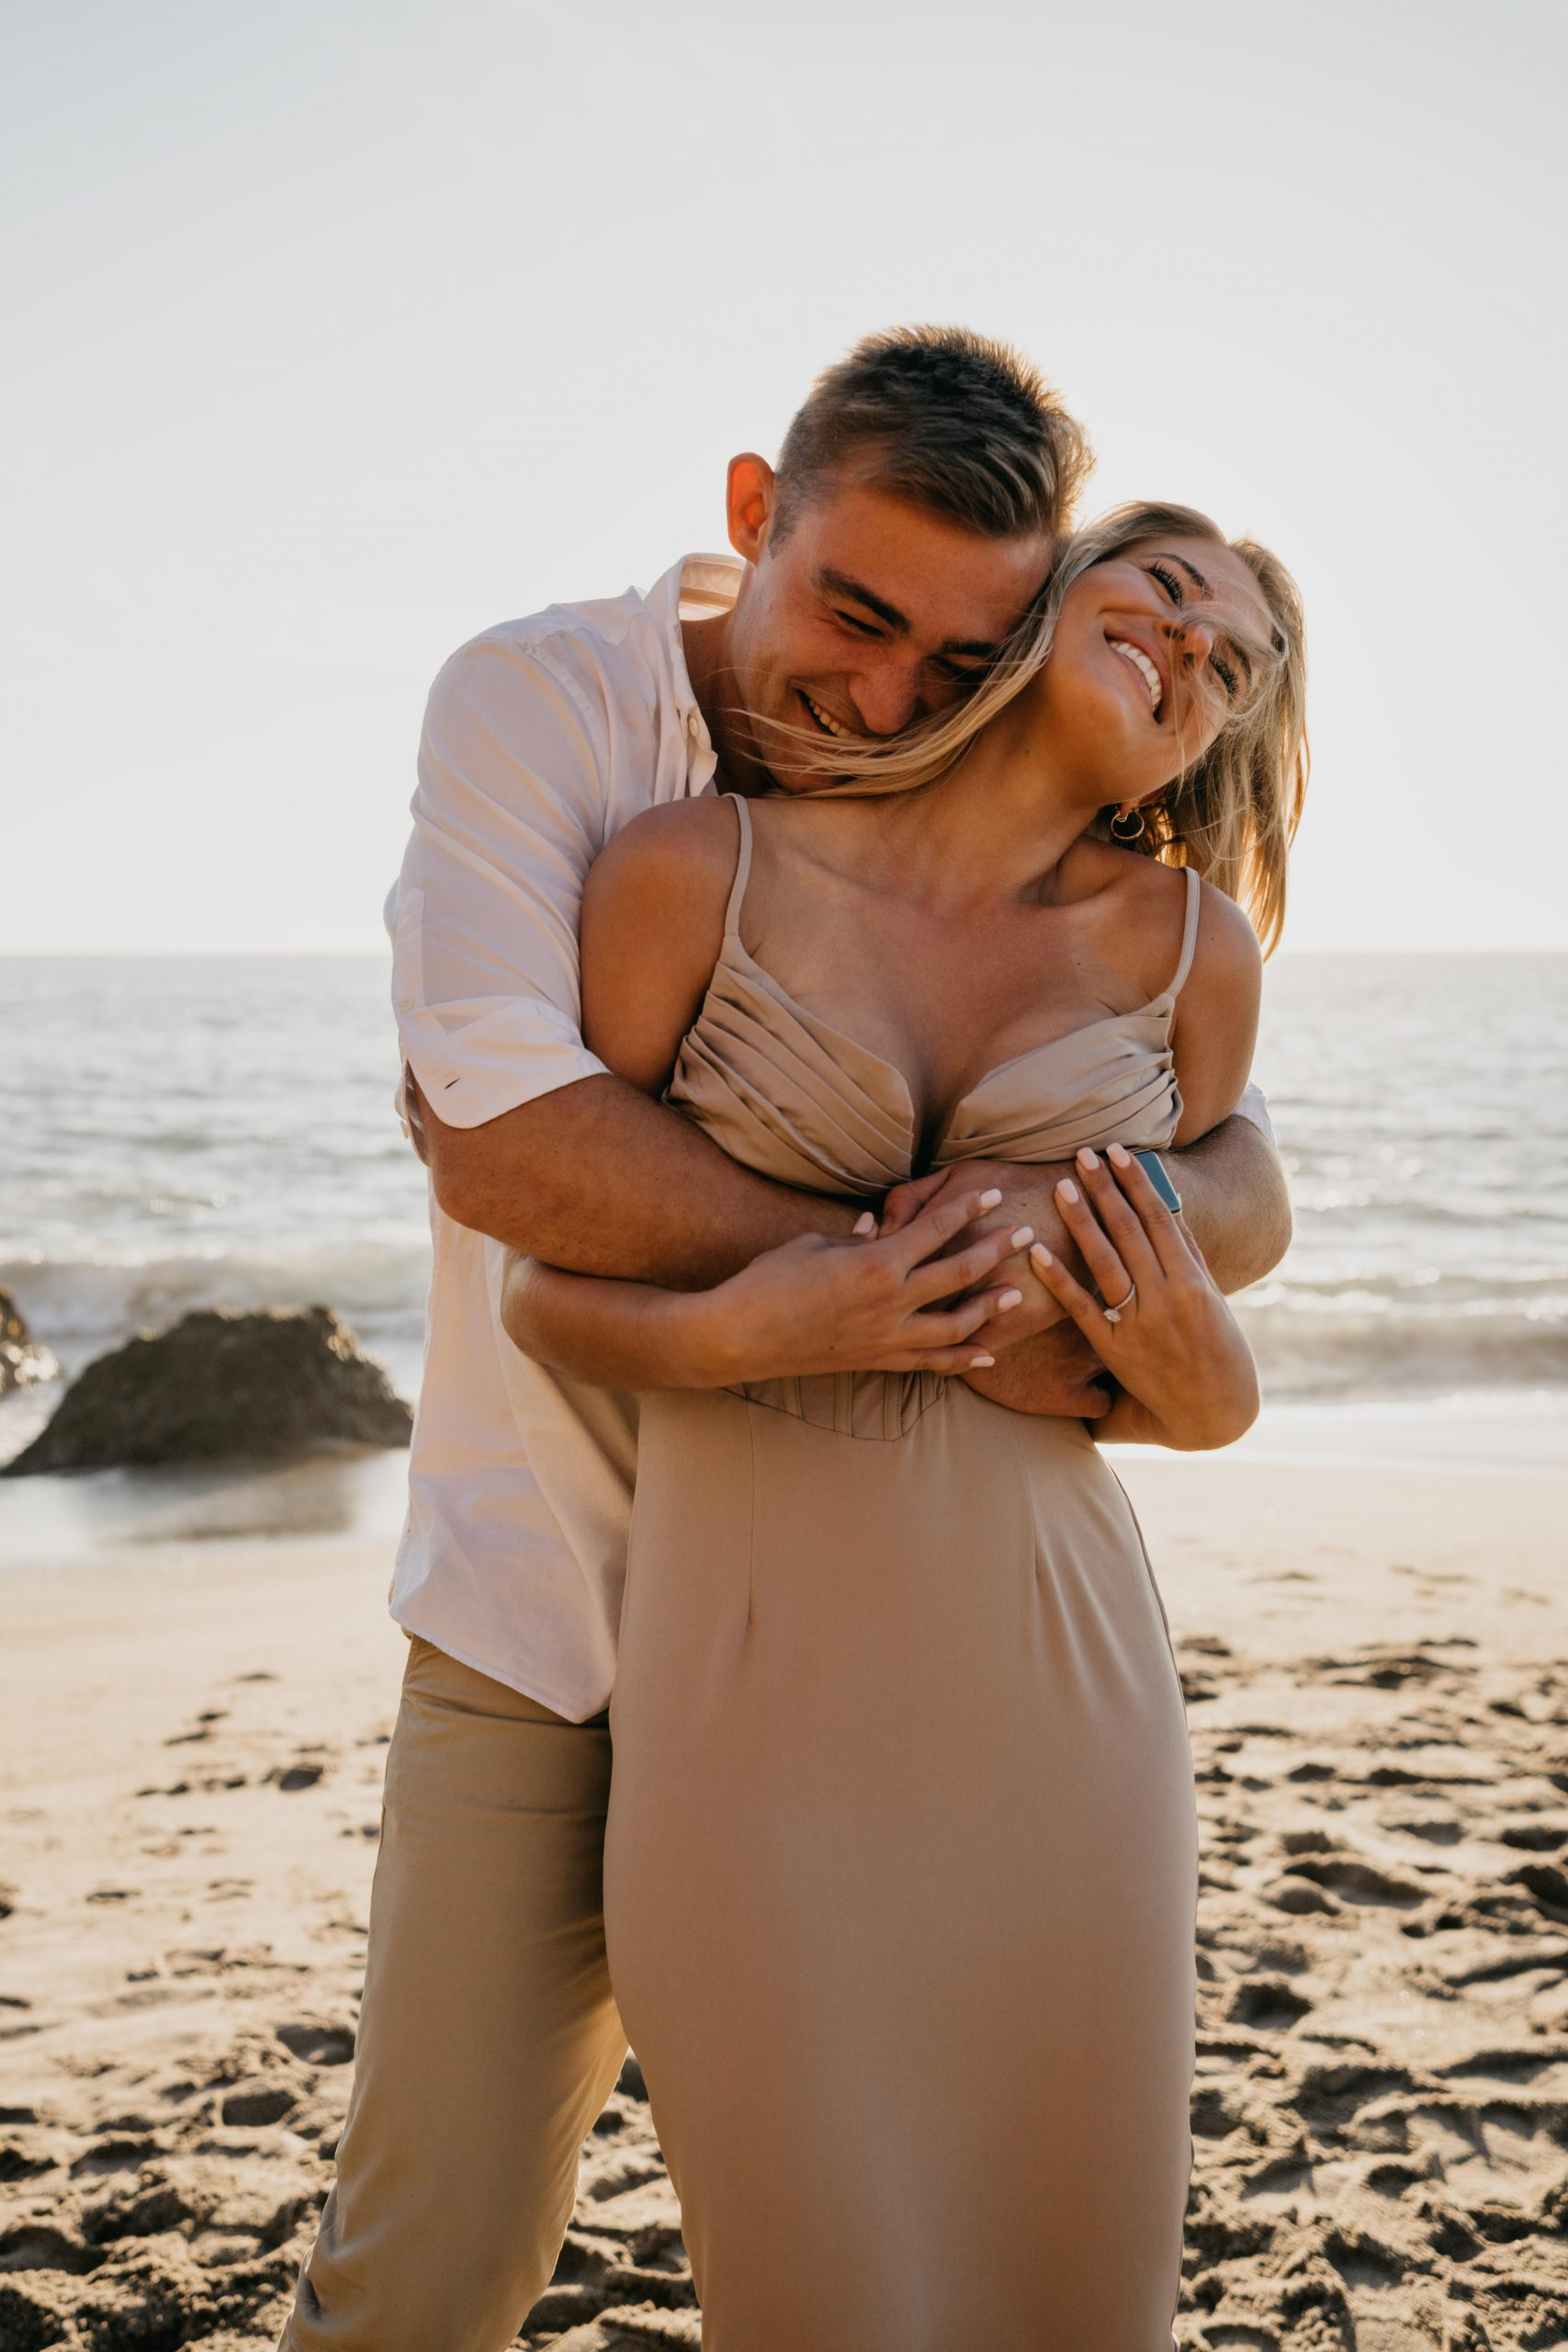 Point Dume Surprise Proposal, image by Fatima Elreda Photo